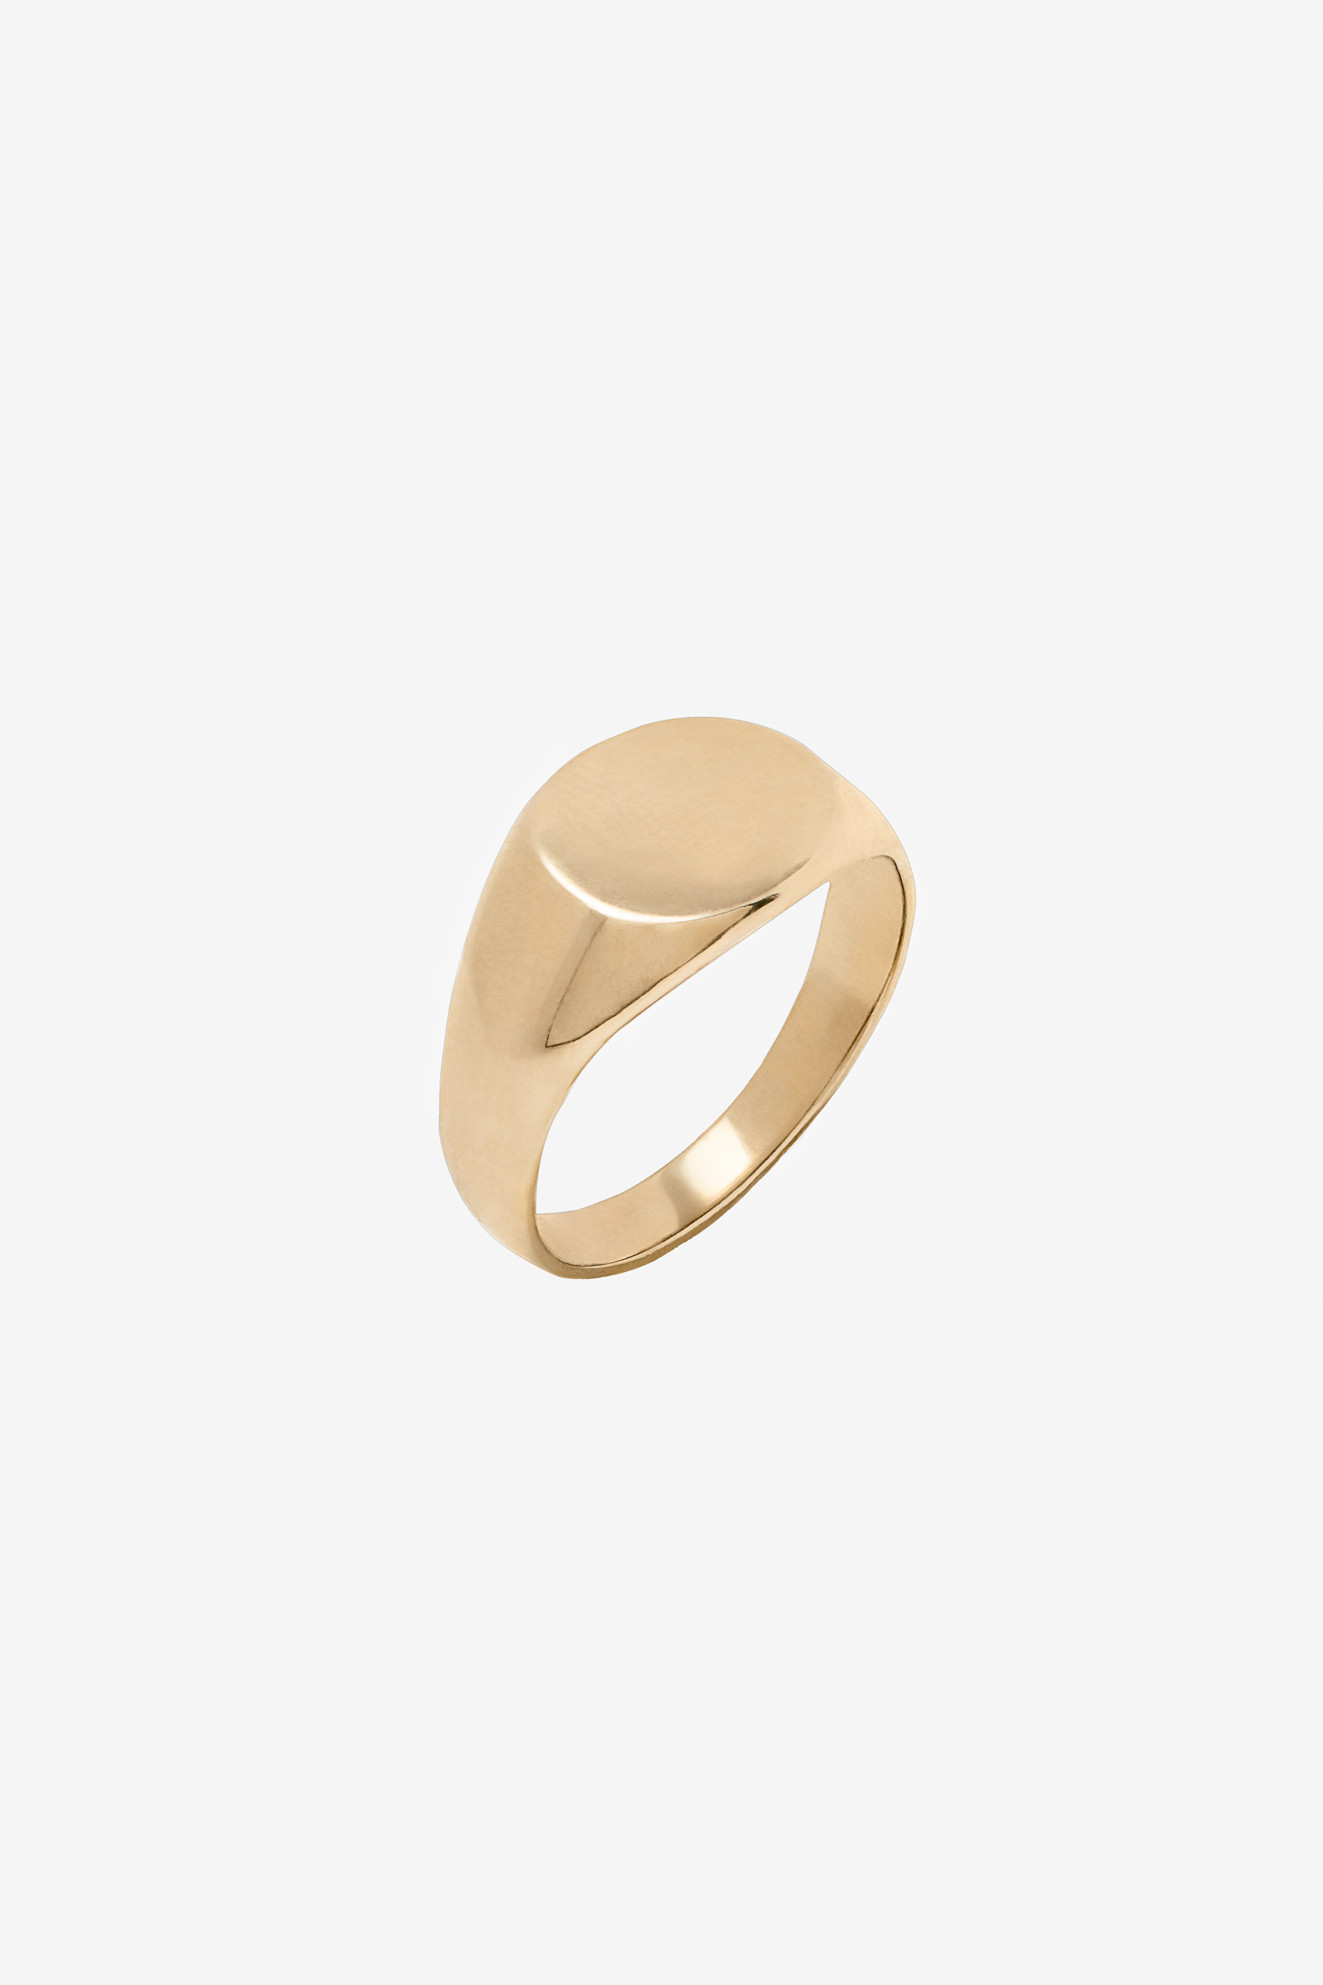 ANINE BING Pinky Ring  14K Yellow Gold with flat surface pinky ring.